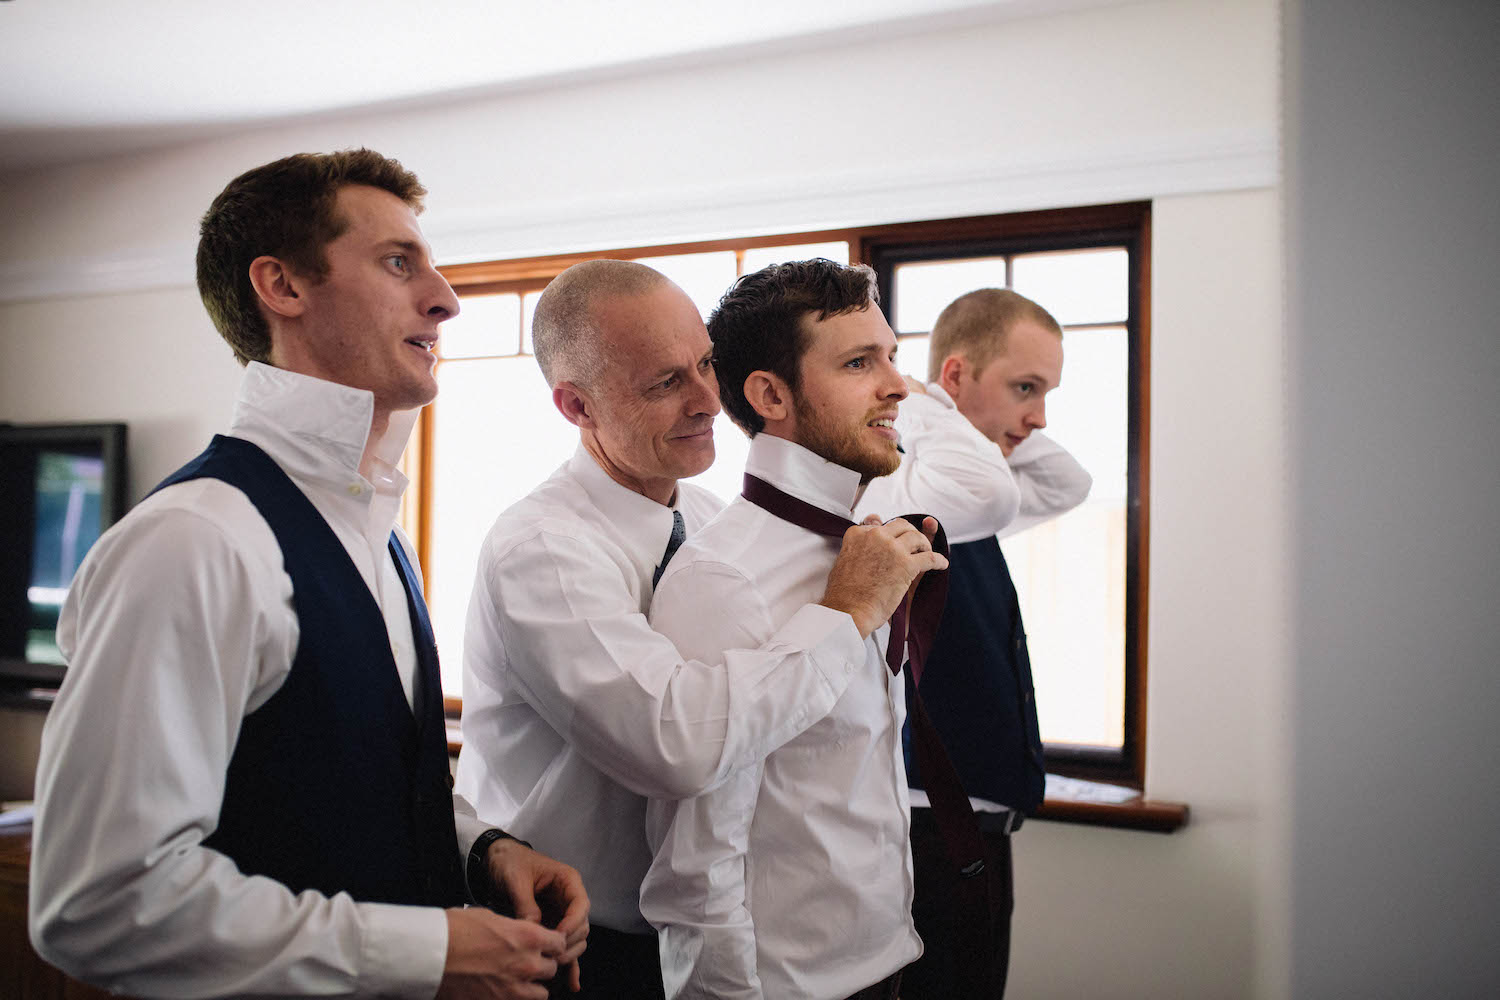 Jibb's Dad & brothers tying his tie the morning of his Subiaco wedding.